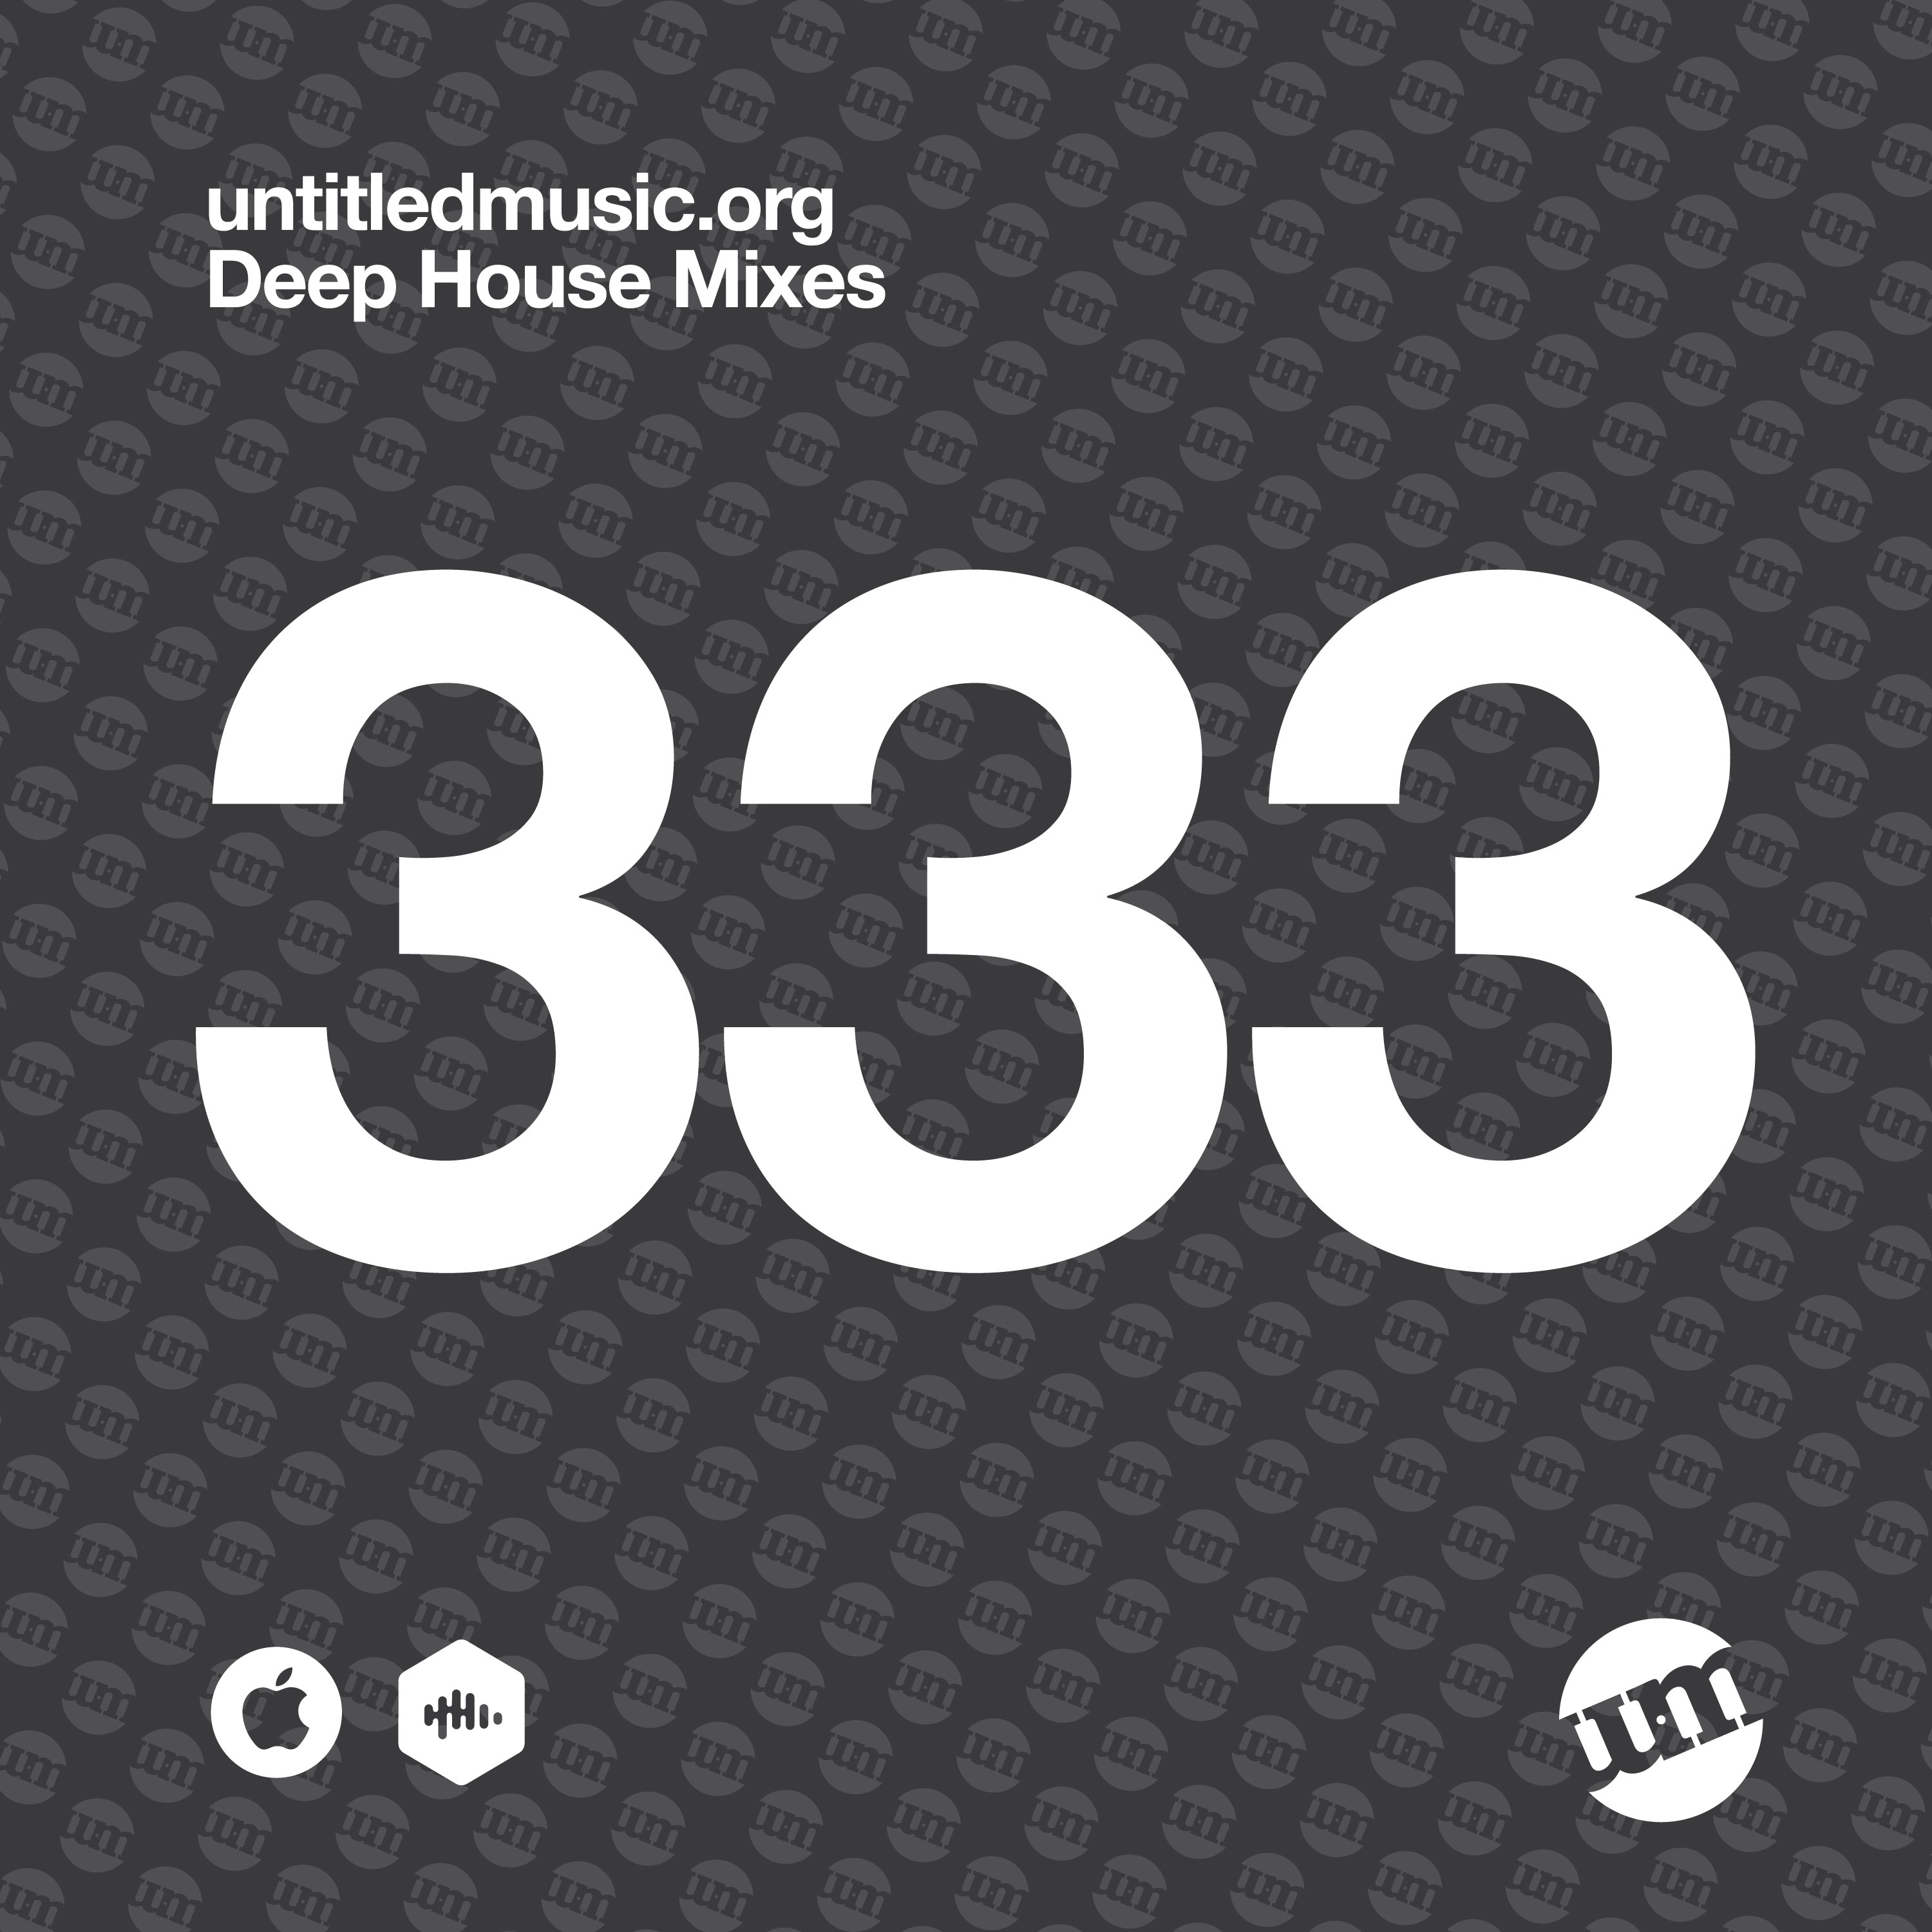 UM333 - Deep House Mix (11.05.20)